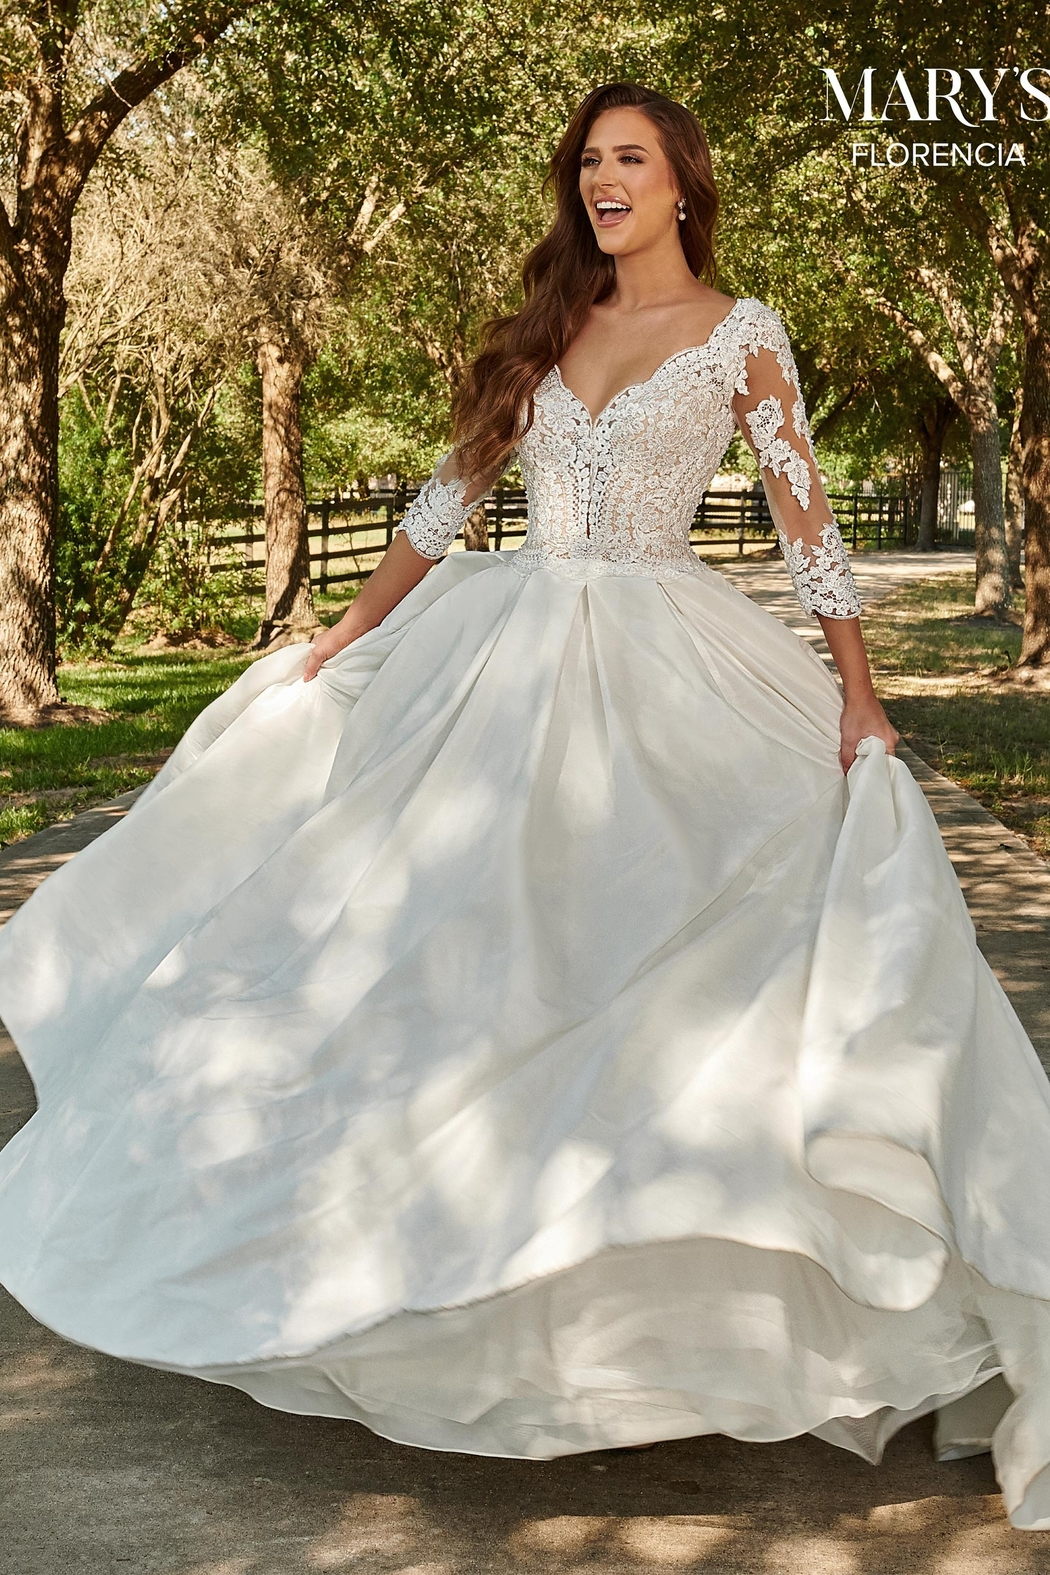 Mary's Bridal Florencia Bridal Gown in Ivory Color - Side Cropped Image